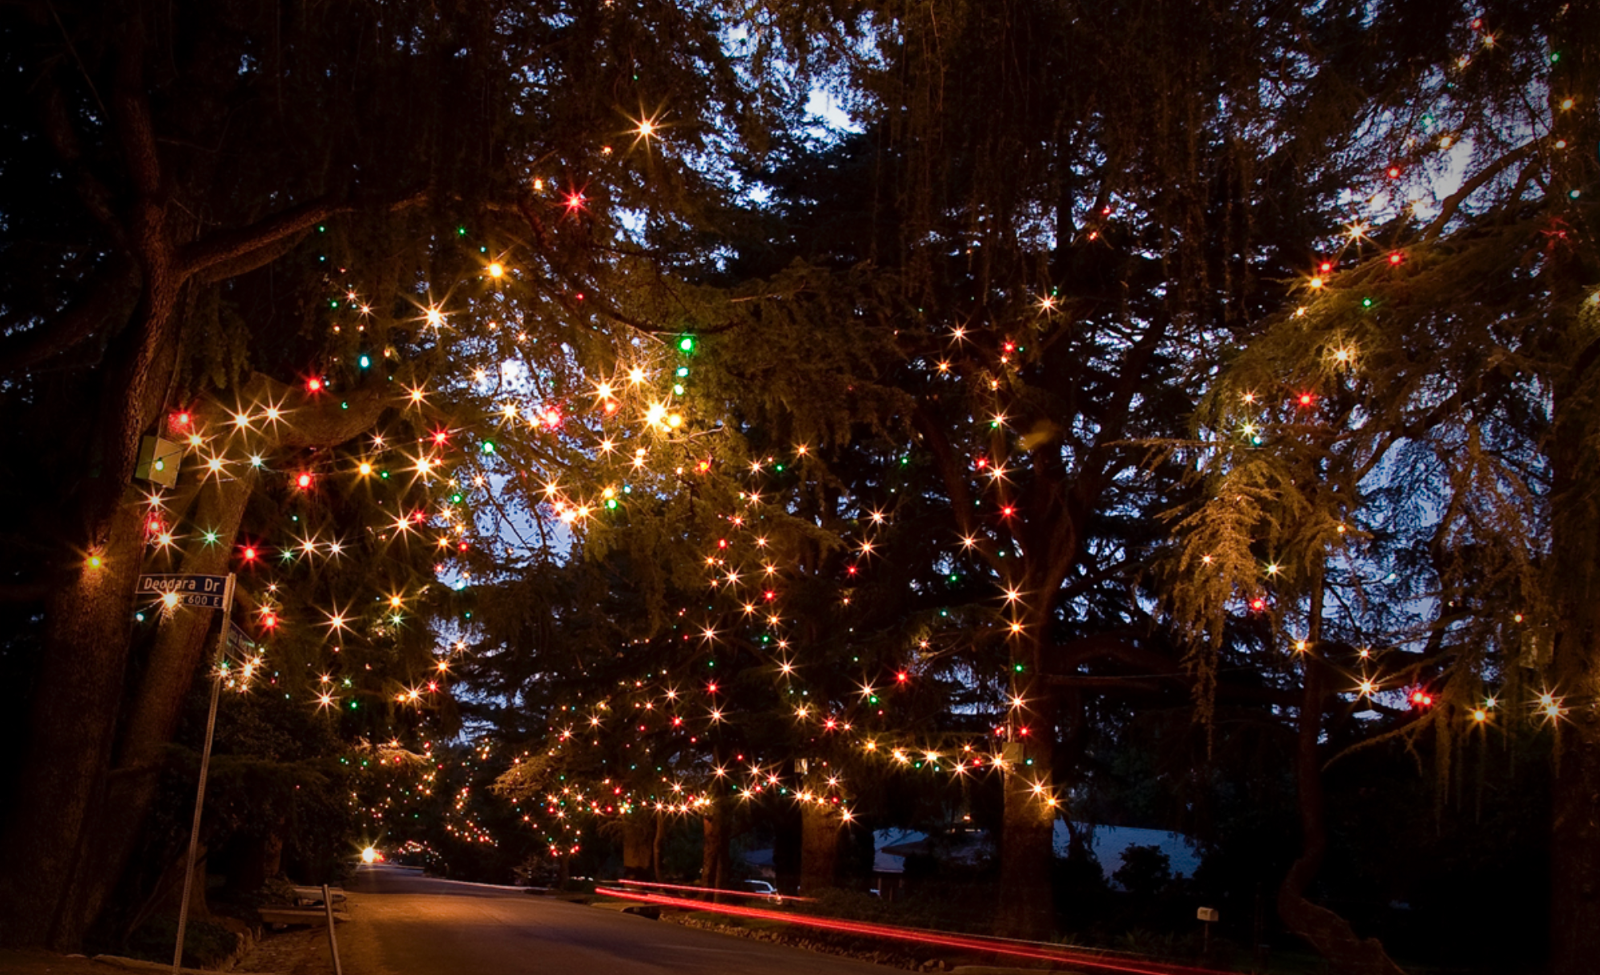 The Best Neighborhoods In L A To See Winter Wonderland Lights